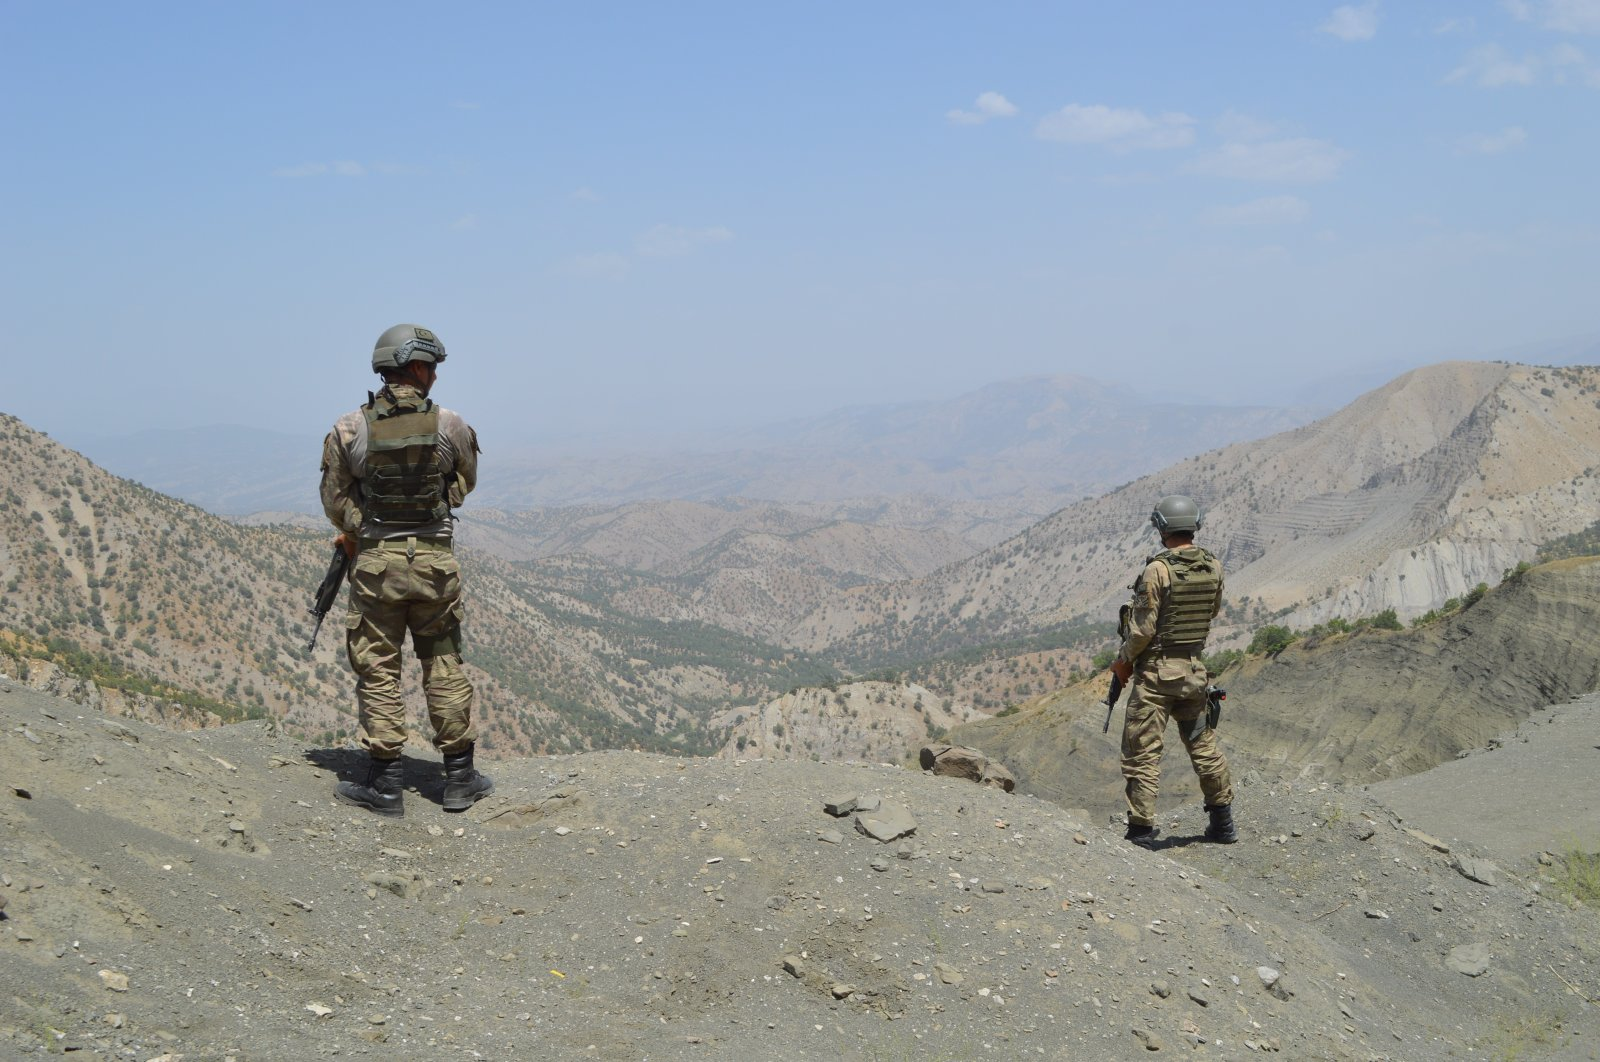 Turkish soldiers are seen during an operation against terrorists in Şırnak province, Turkey, Oct. 6, 2021. (IHA Photo)